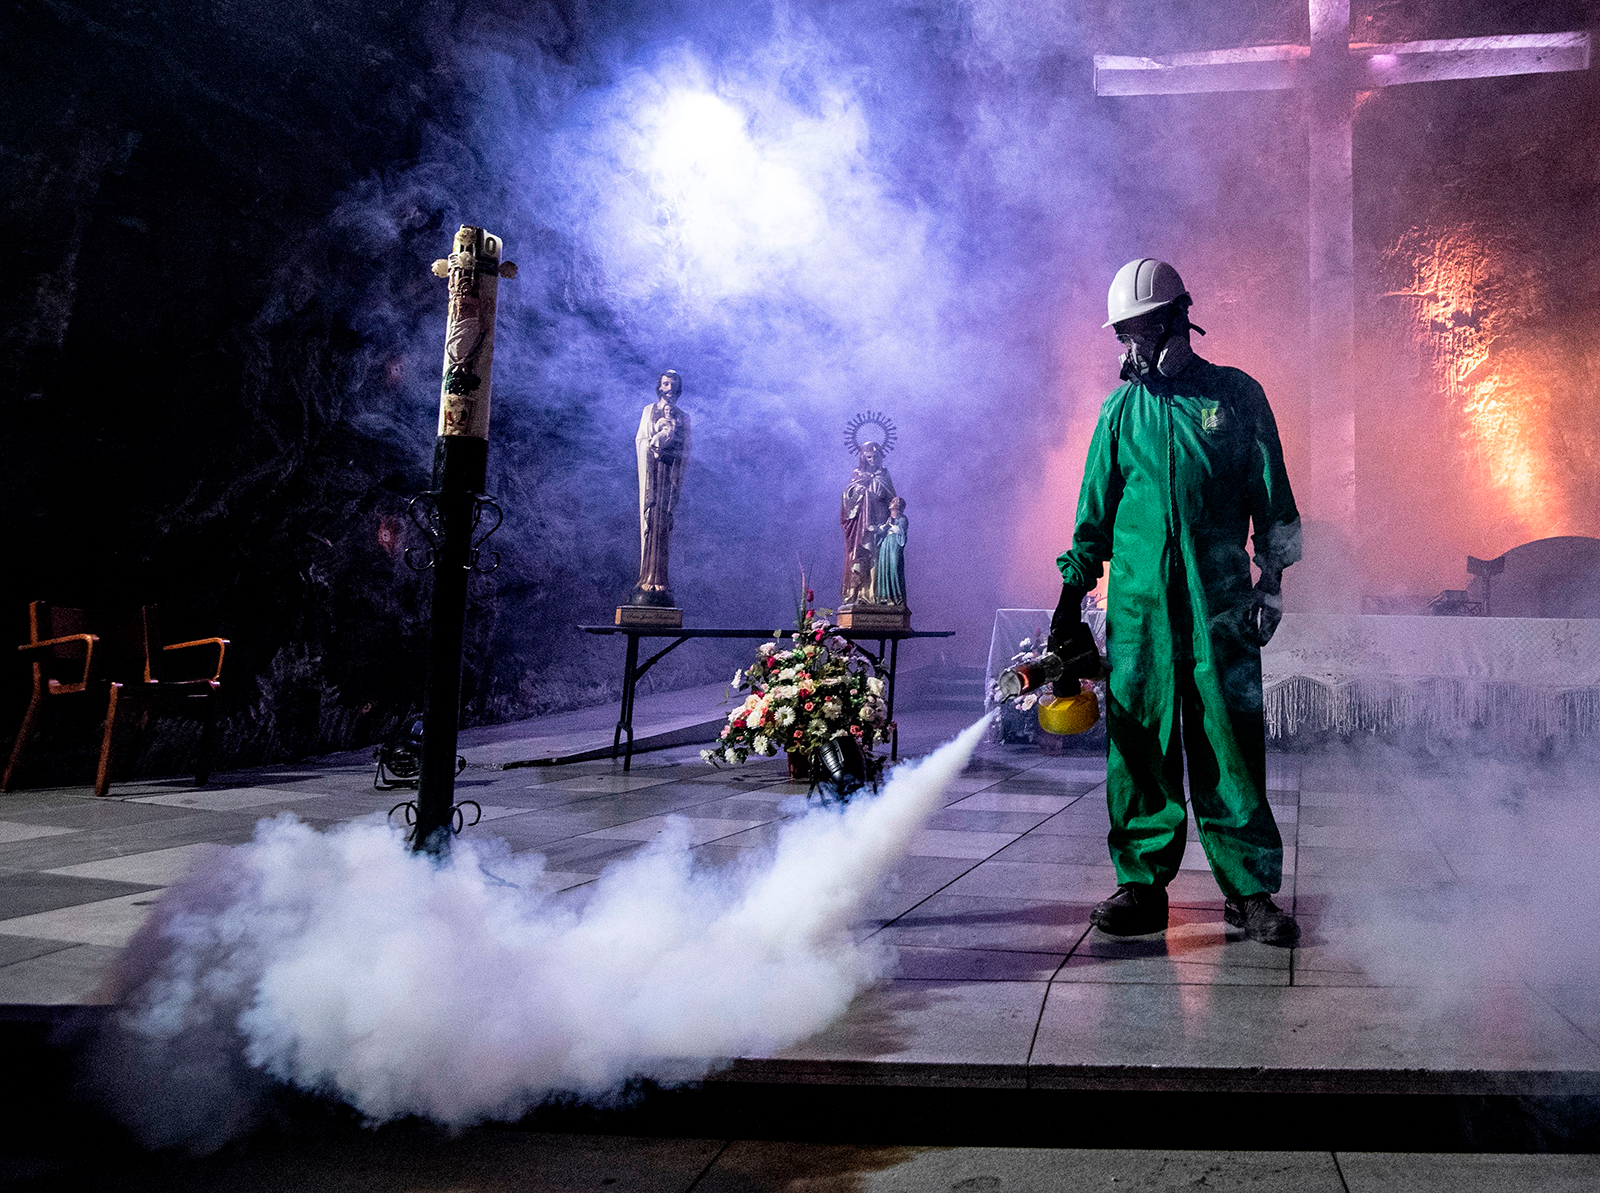 A worker disinfects the Salt Cathedral of Zipaquira, an underground church built into a salt mine, in Zipaquira, 45 km north of Bogota, on August 30.